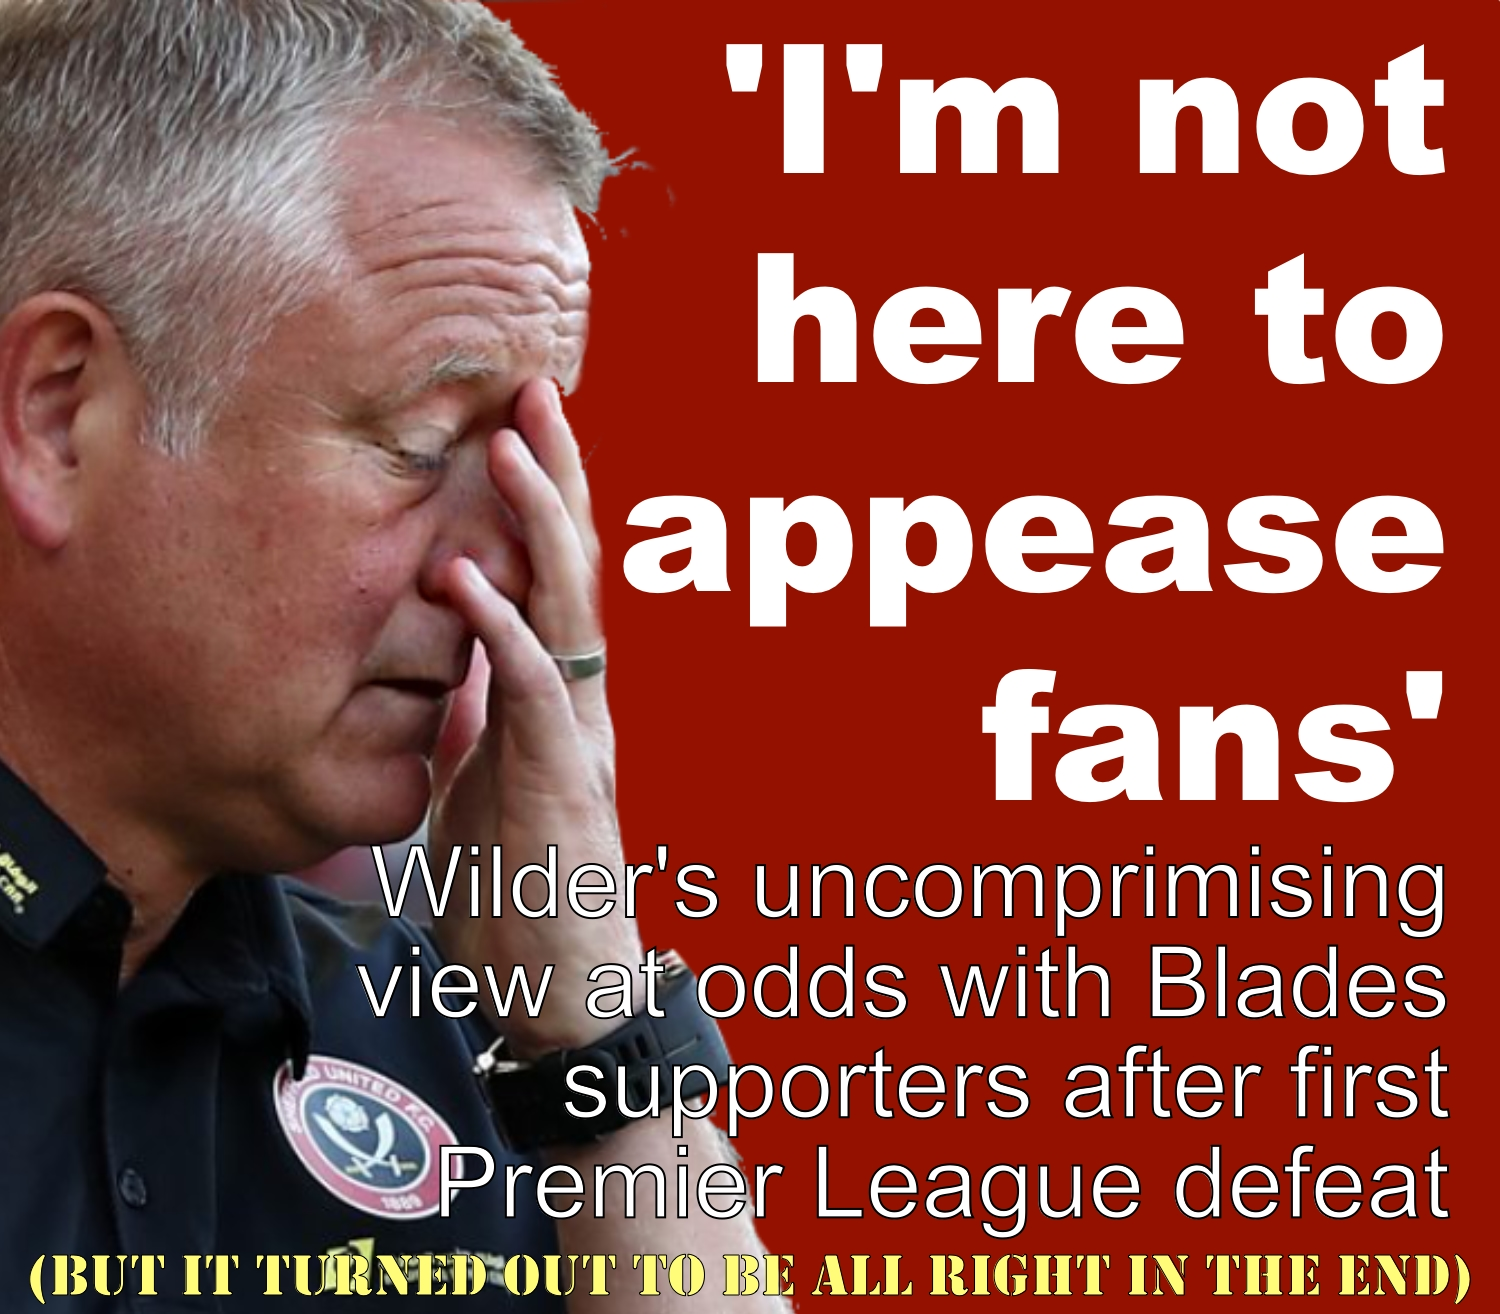 Blades boss Chris Wilder says 'Im not here to appease fans'  after tearing into his side following Sheffield United's first Premier League defeat of the season